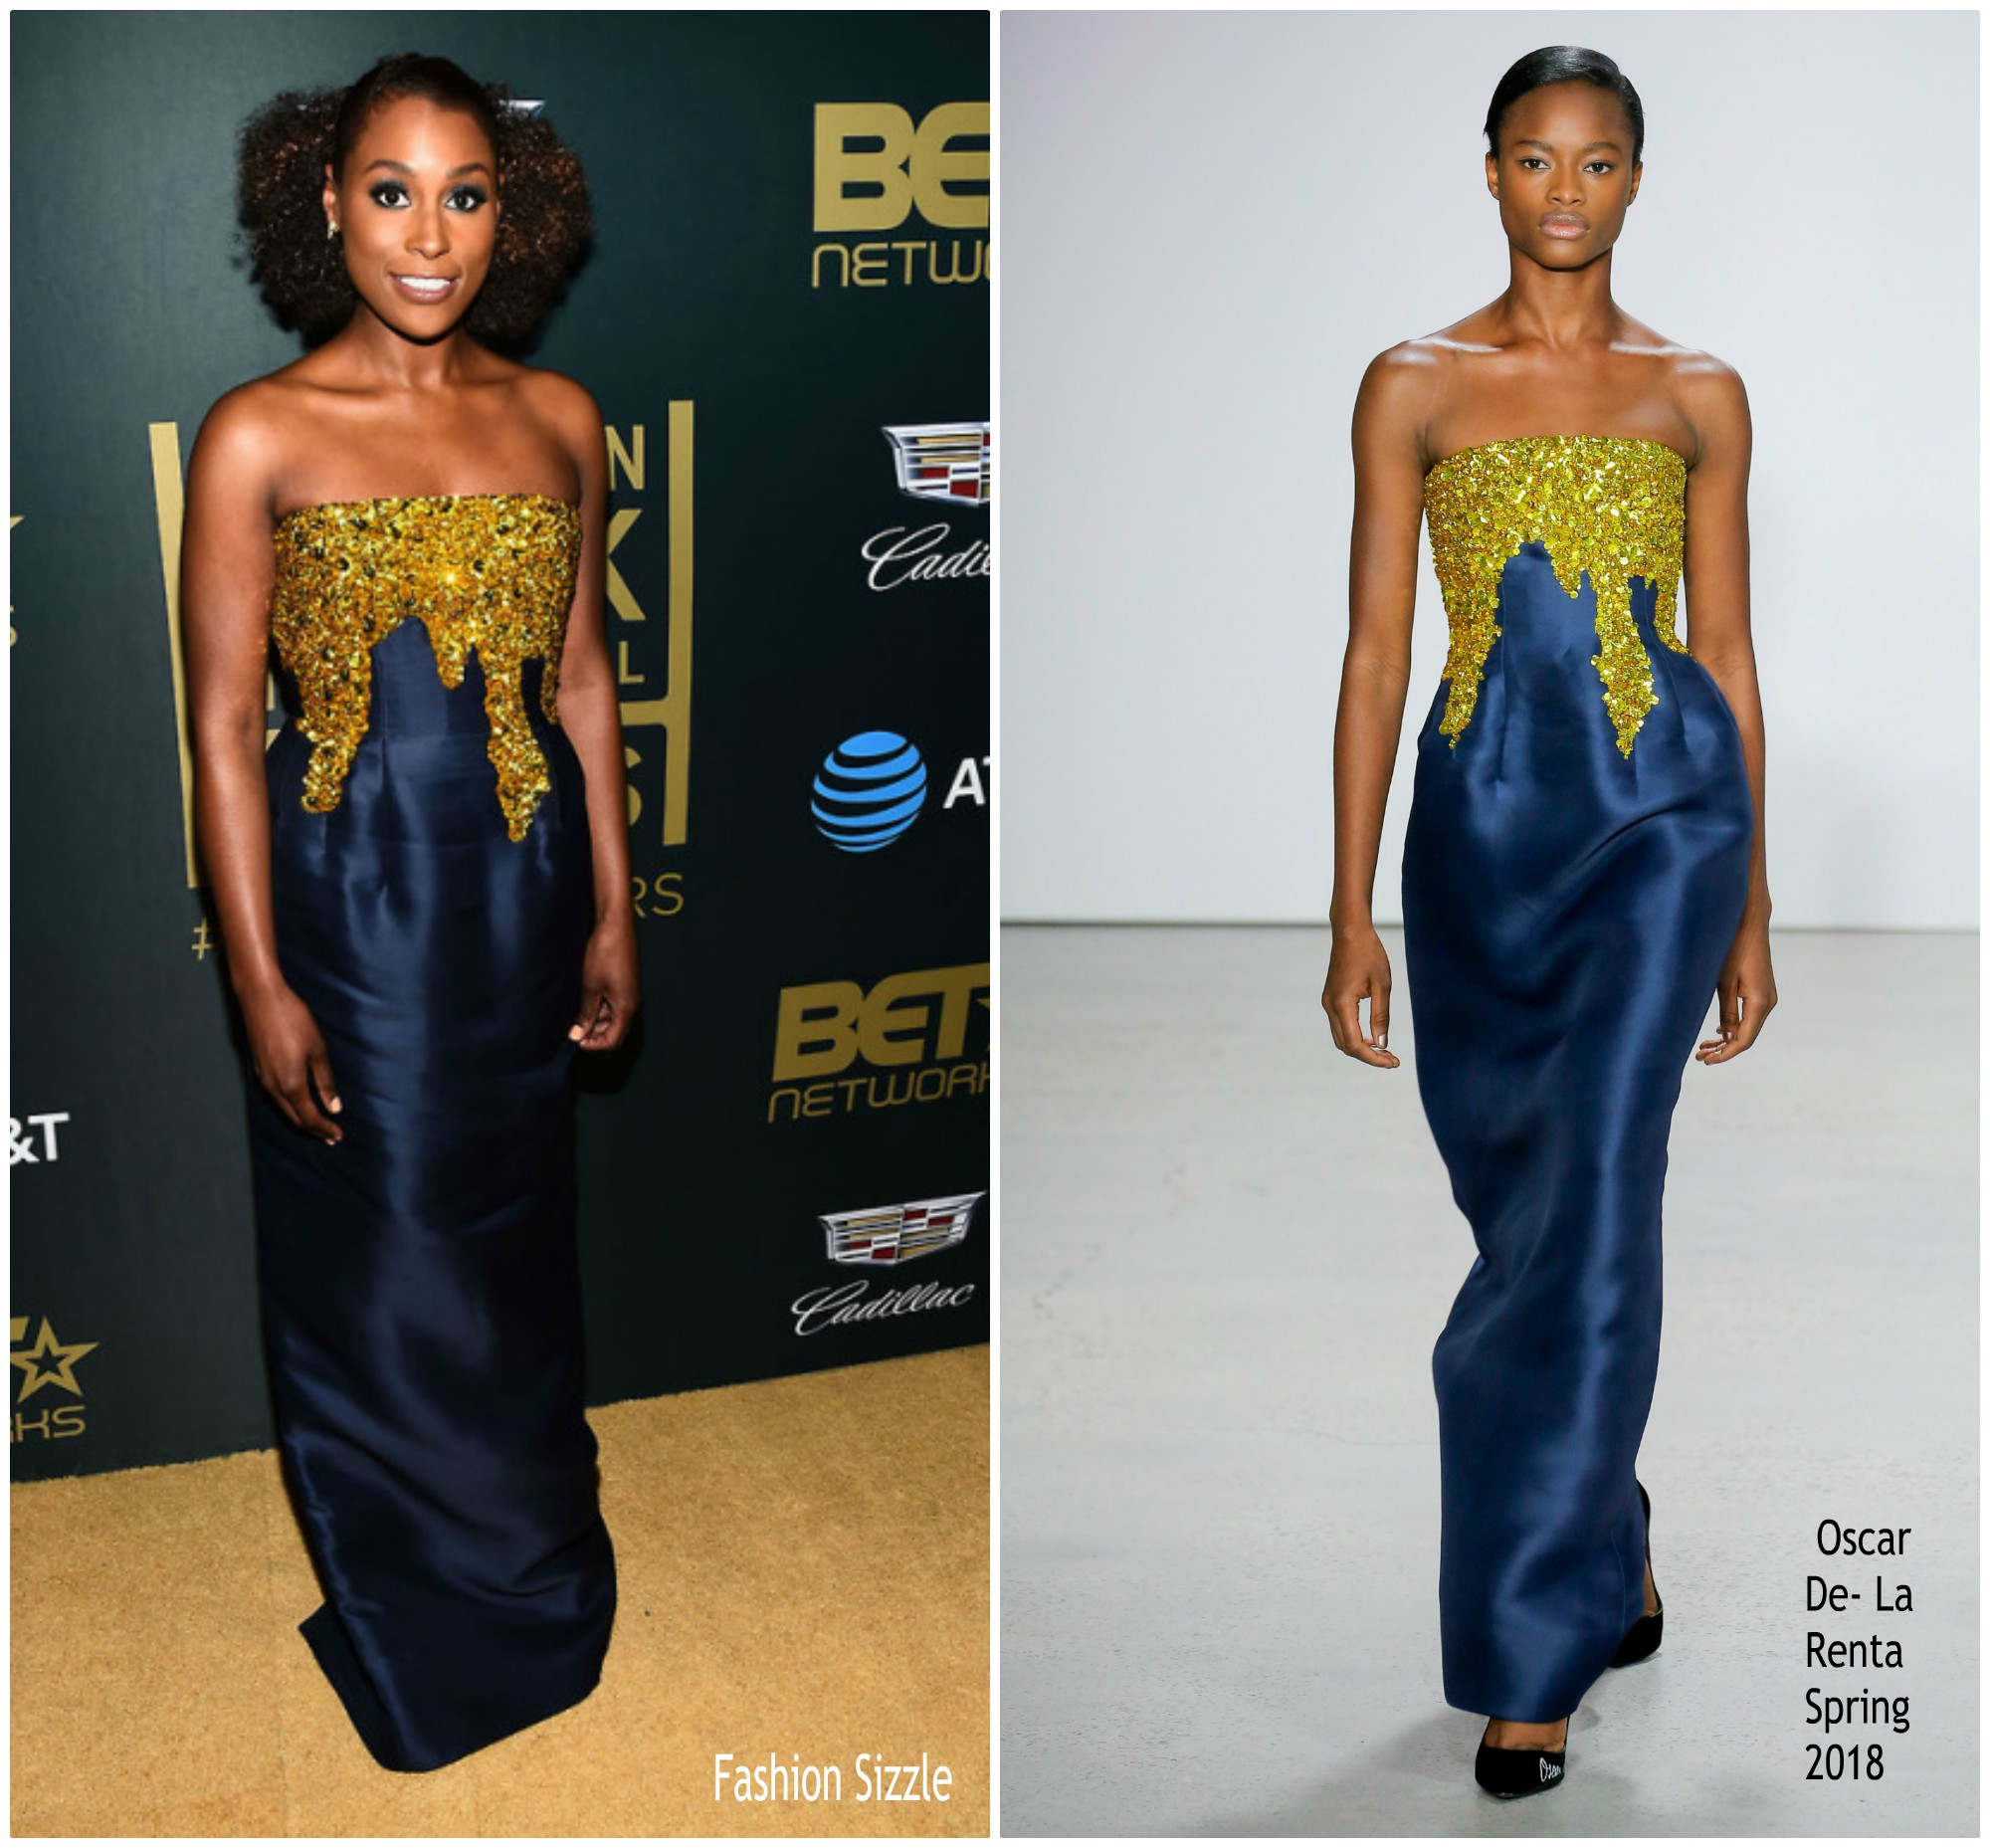 issa-rae-in-oscar-de-la-renta-2018-american-black-film-festival-honors-awards